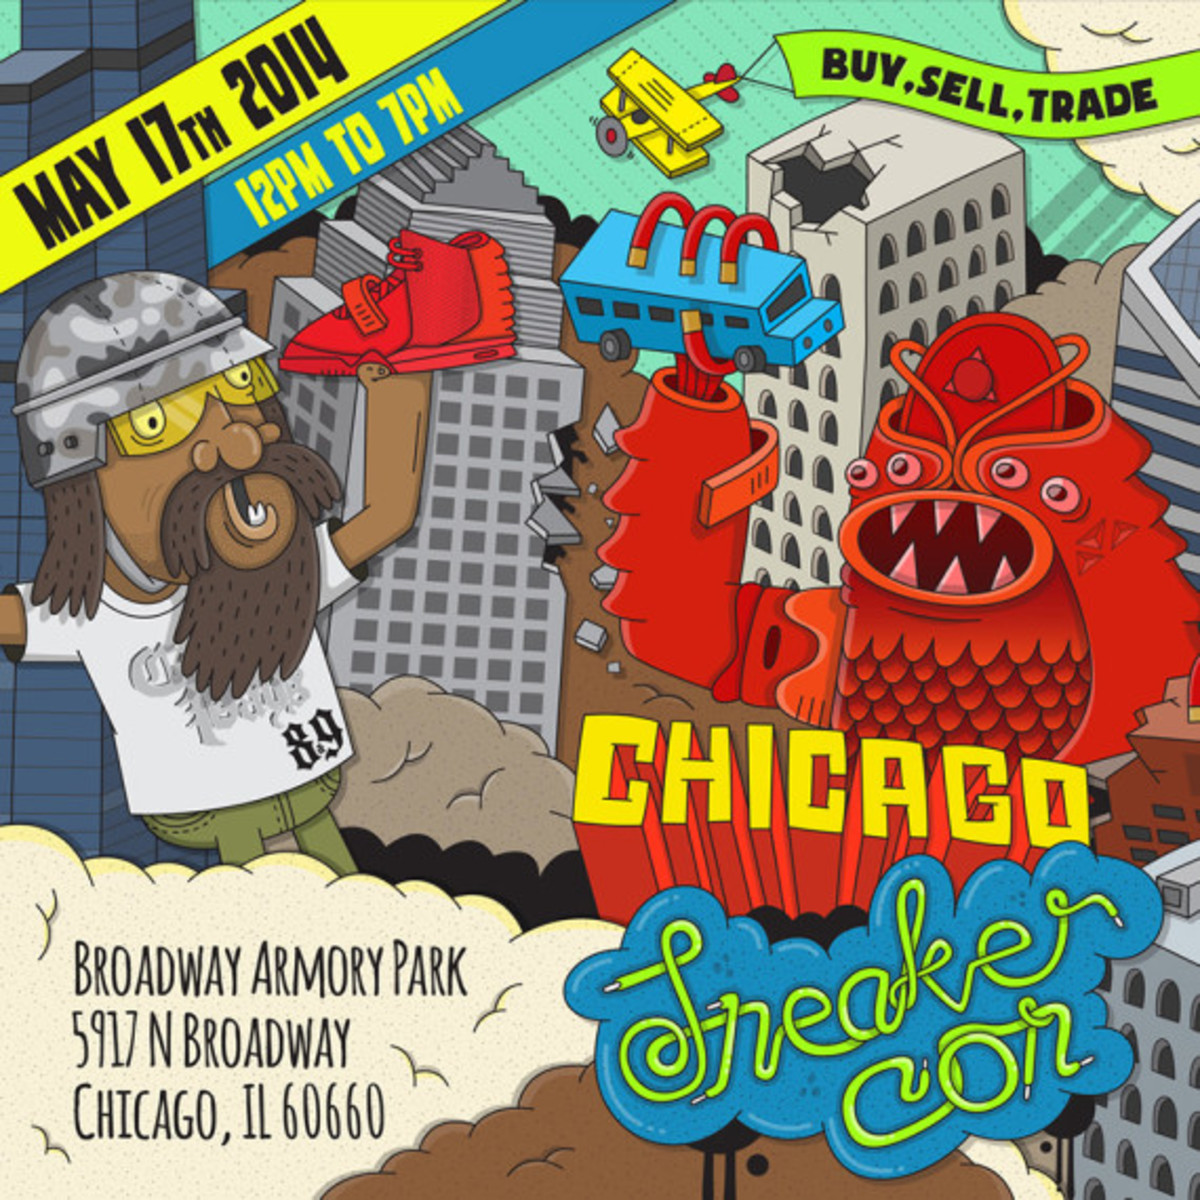 sneaker-con-chicago-may-2014-d